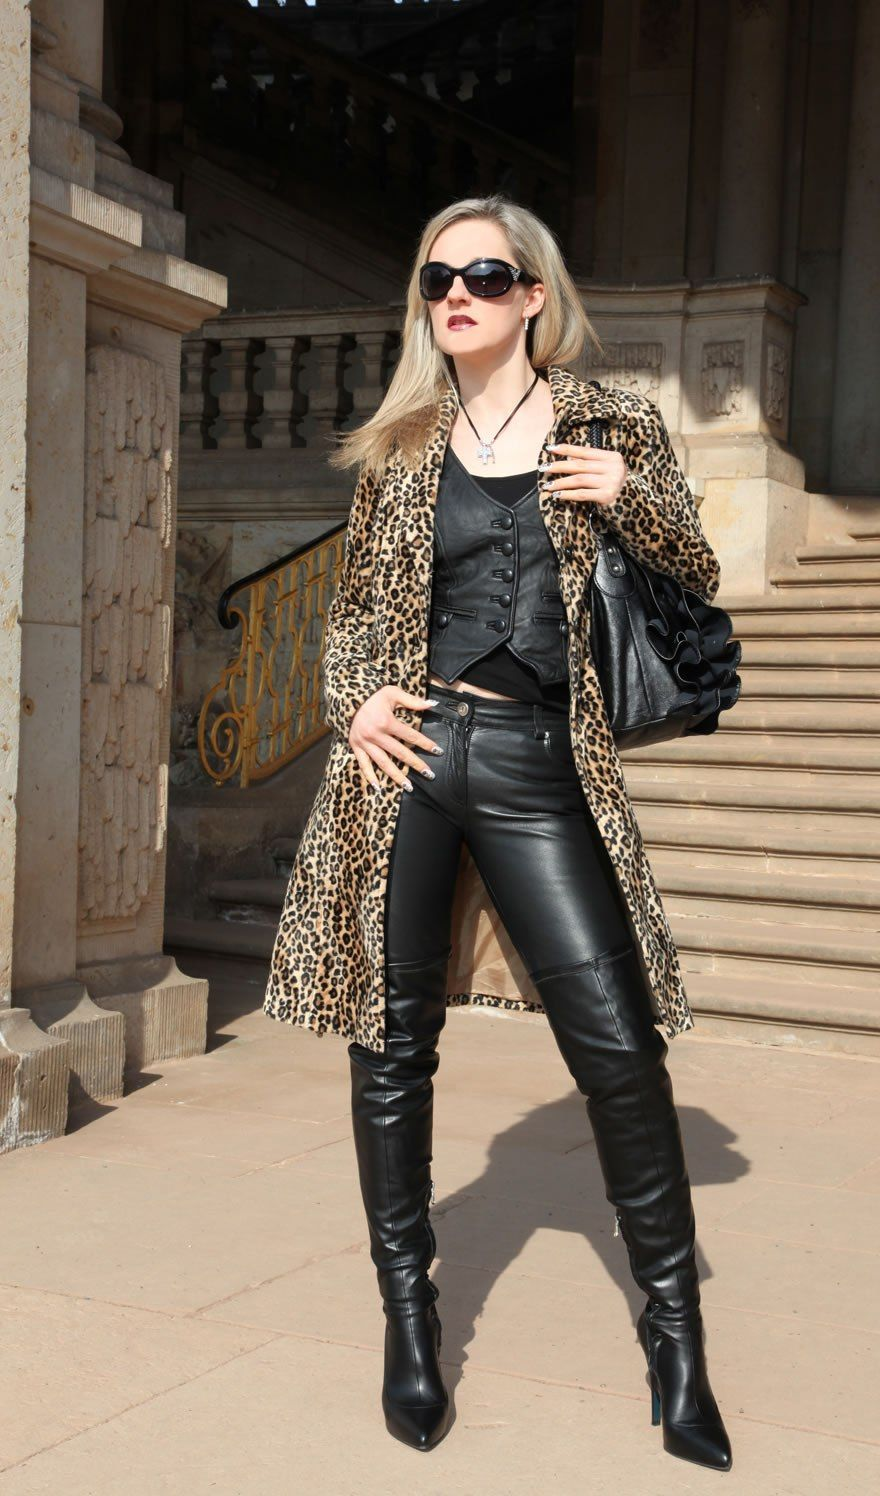 All in leather street milf